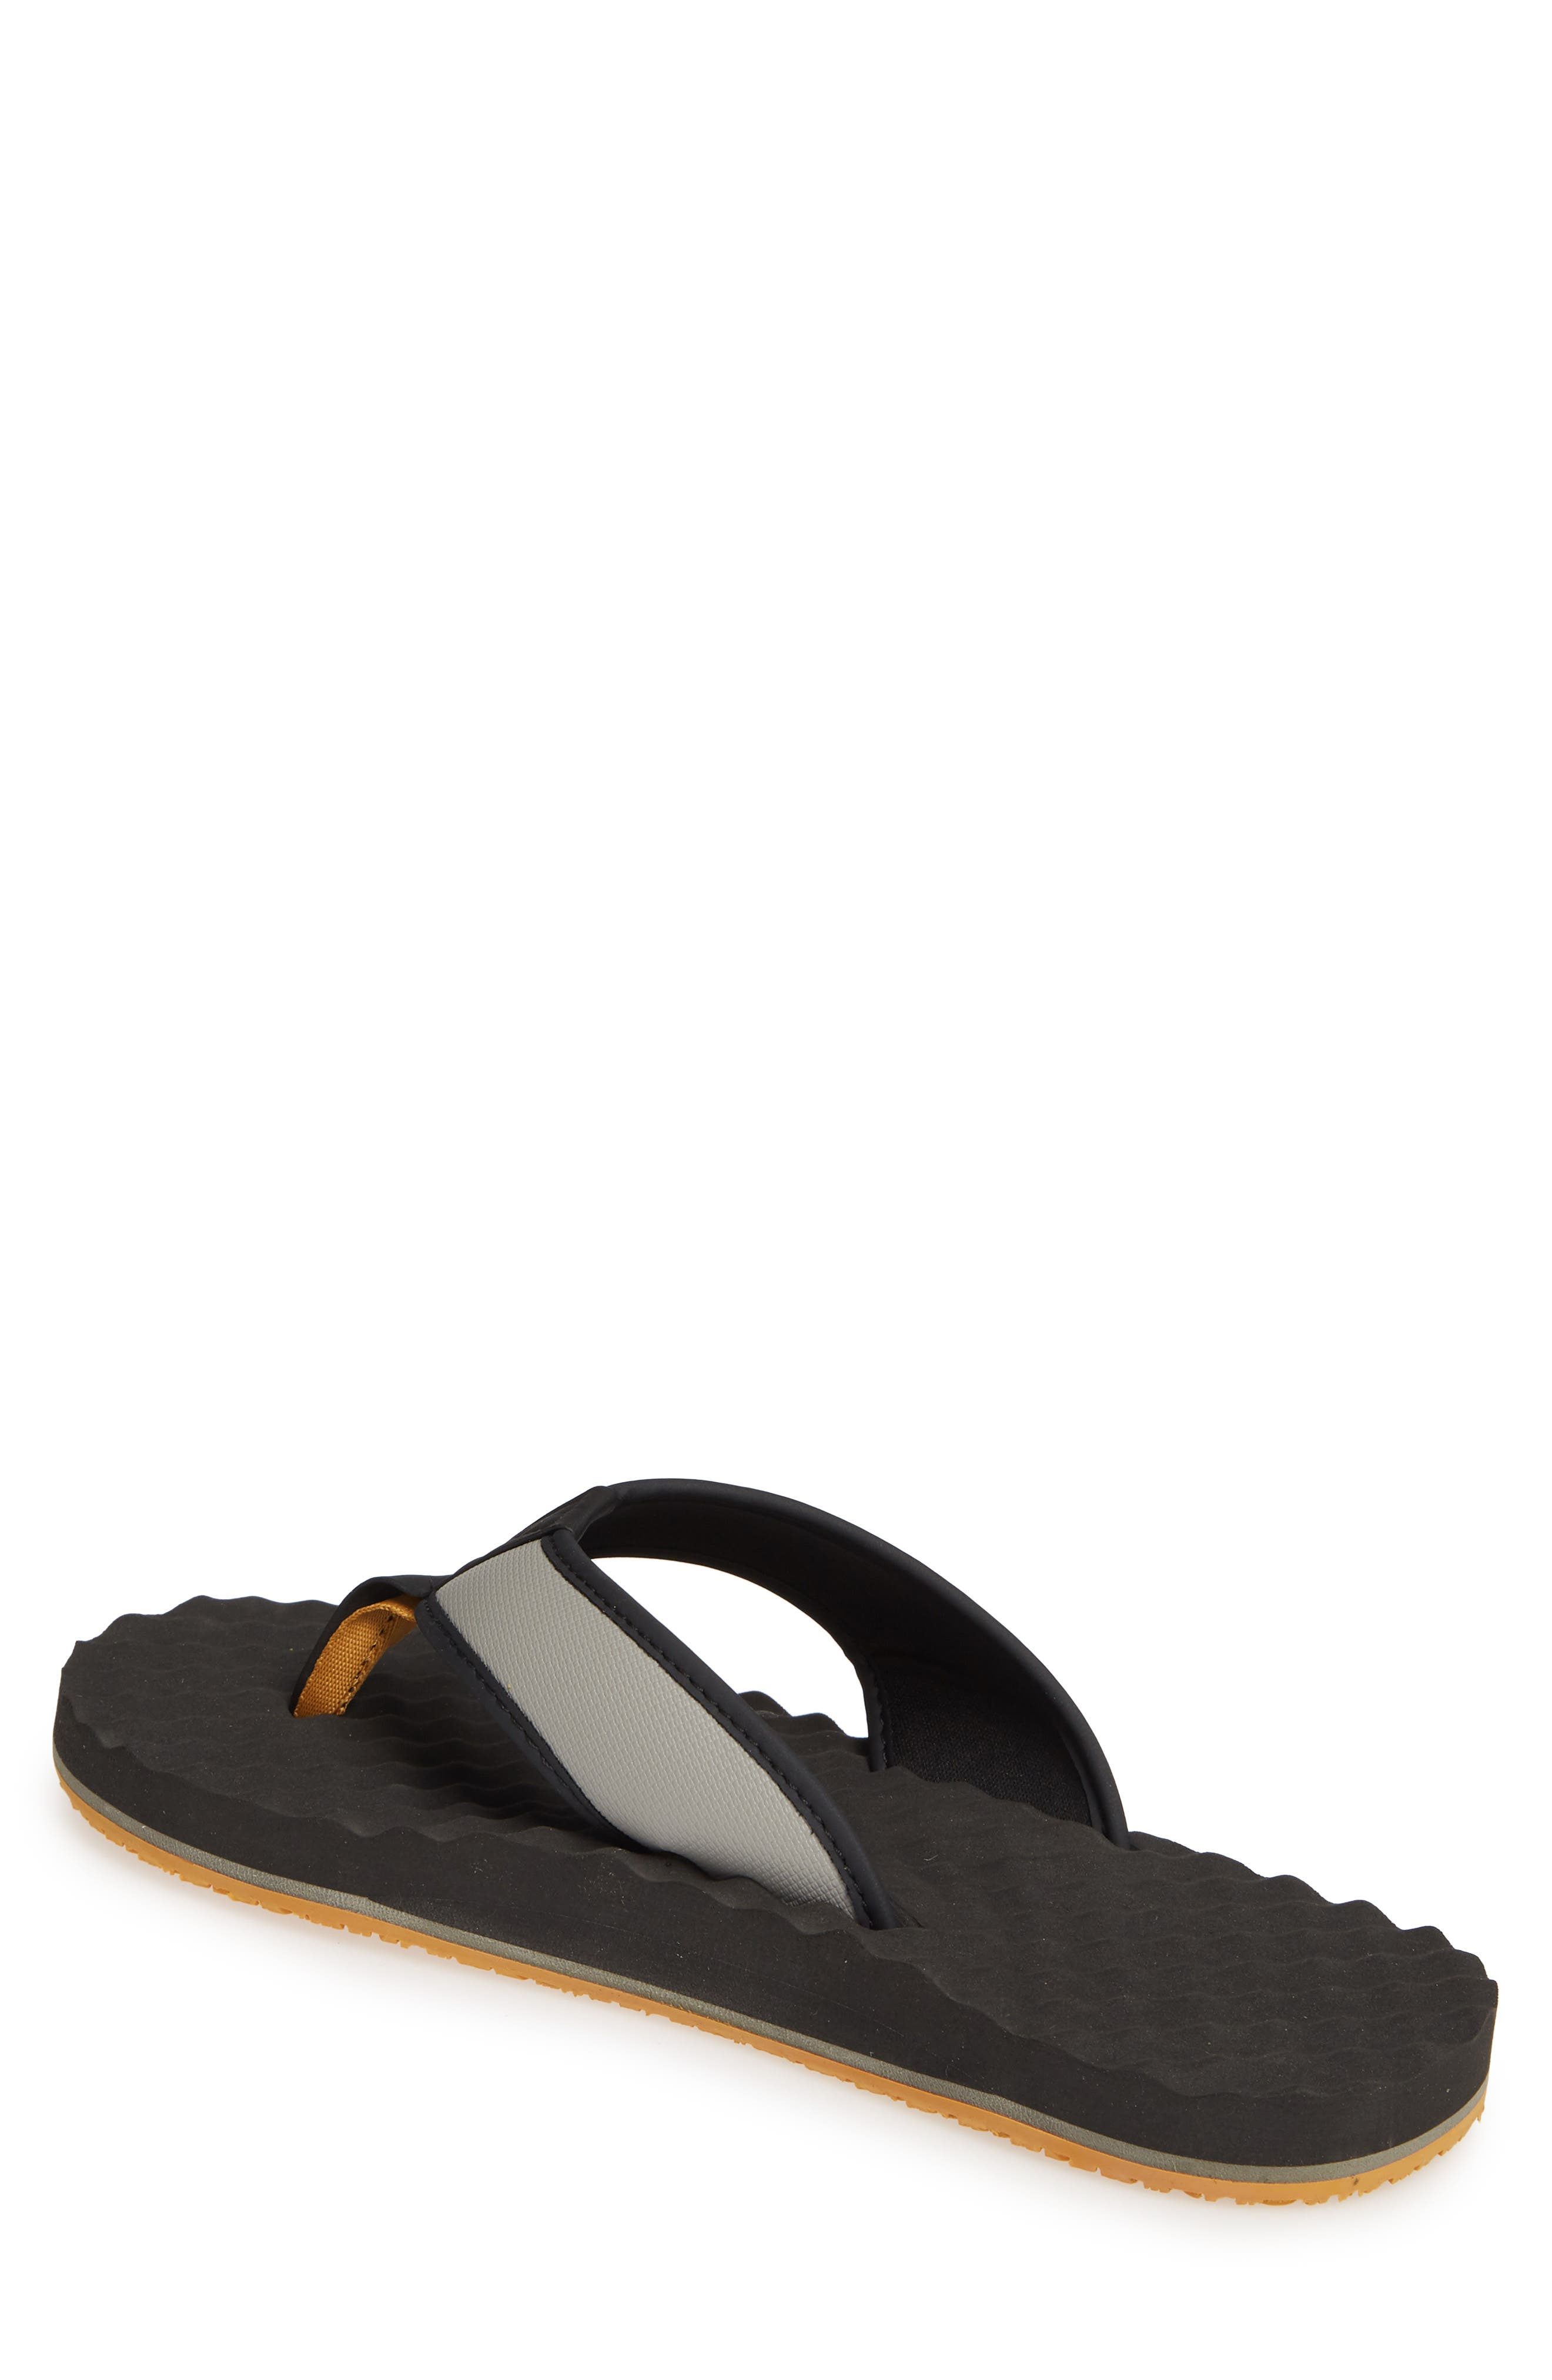 THE NORTH FACE, 'Base Camp' Water Friendly Flip Flop, Alternate thumbnail 2, color, 021